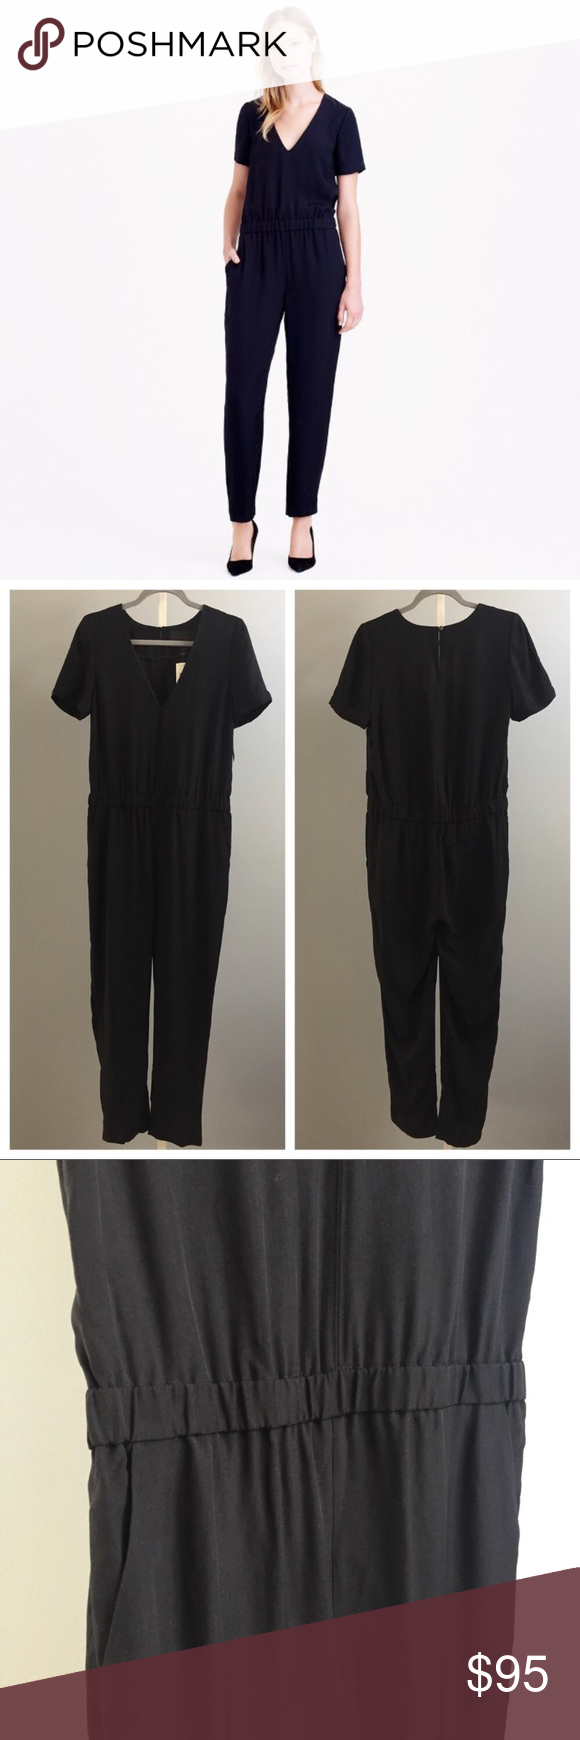 b0cb5733f50 J Crew Collection Jumpsuit Romper in Pitch Black Gorgeous silky feel J Crew  Collection Jumpsuit in Pitch Black. Size 8. New without tags....plastic tag  ...